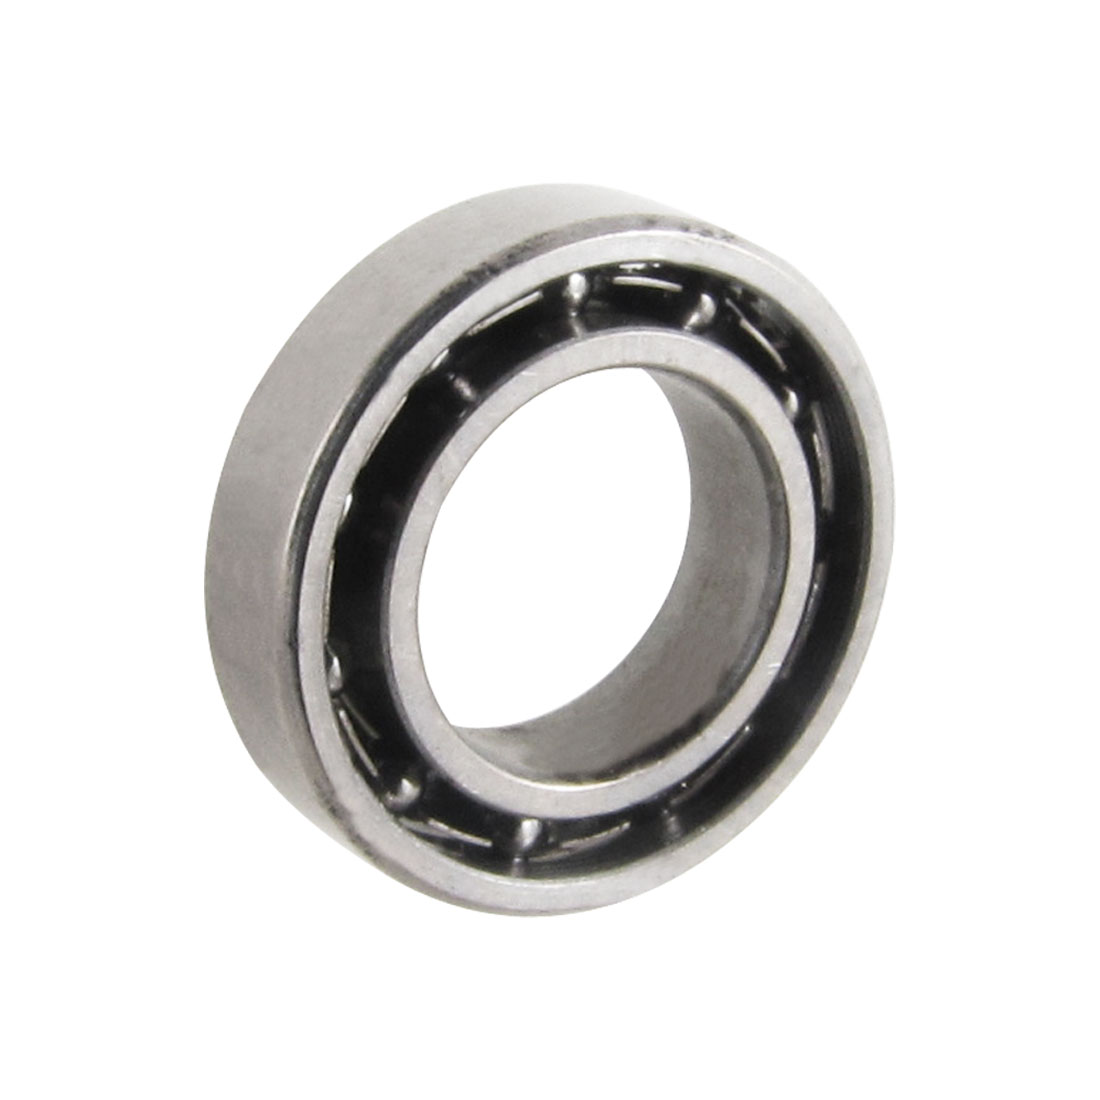 Skateboard-8mm-x-14mm-x-3-5mm-Open-Stainless-Steel-Deep-Groove-Ball-Bearing